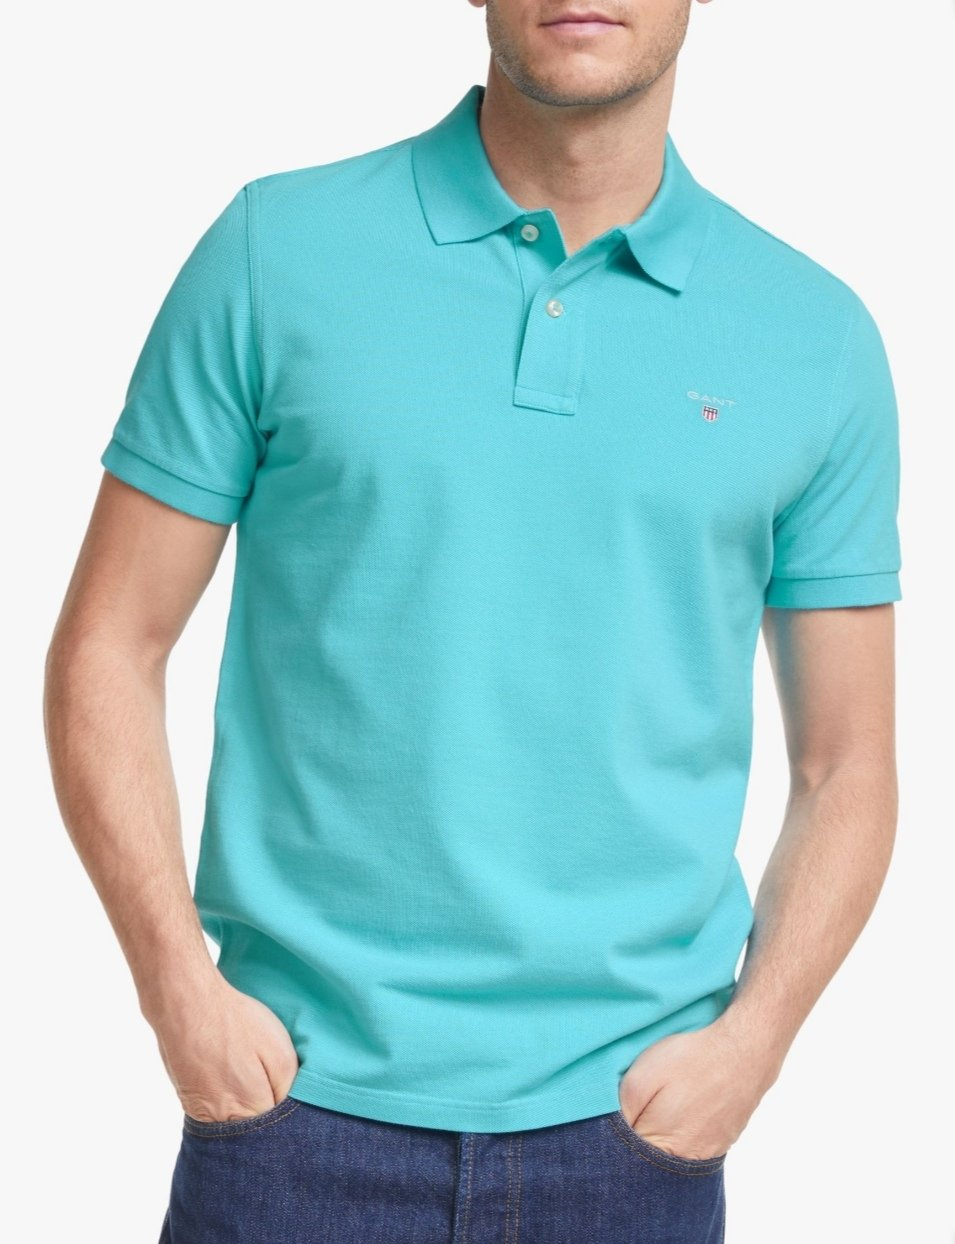 GANT - Original Piqué Polo Shirt (M & L only)